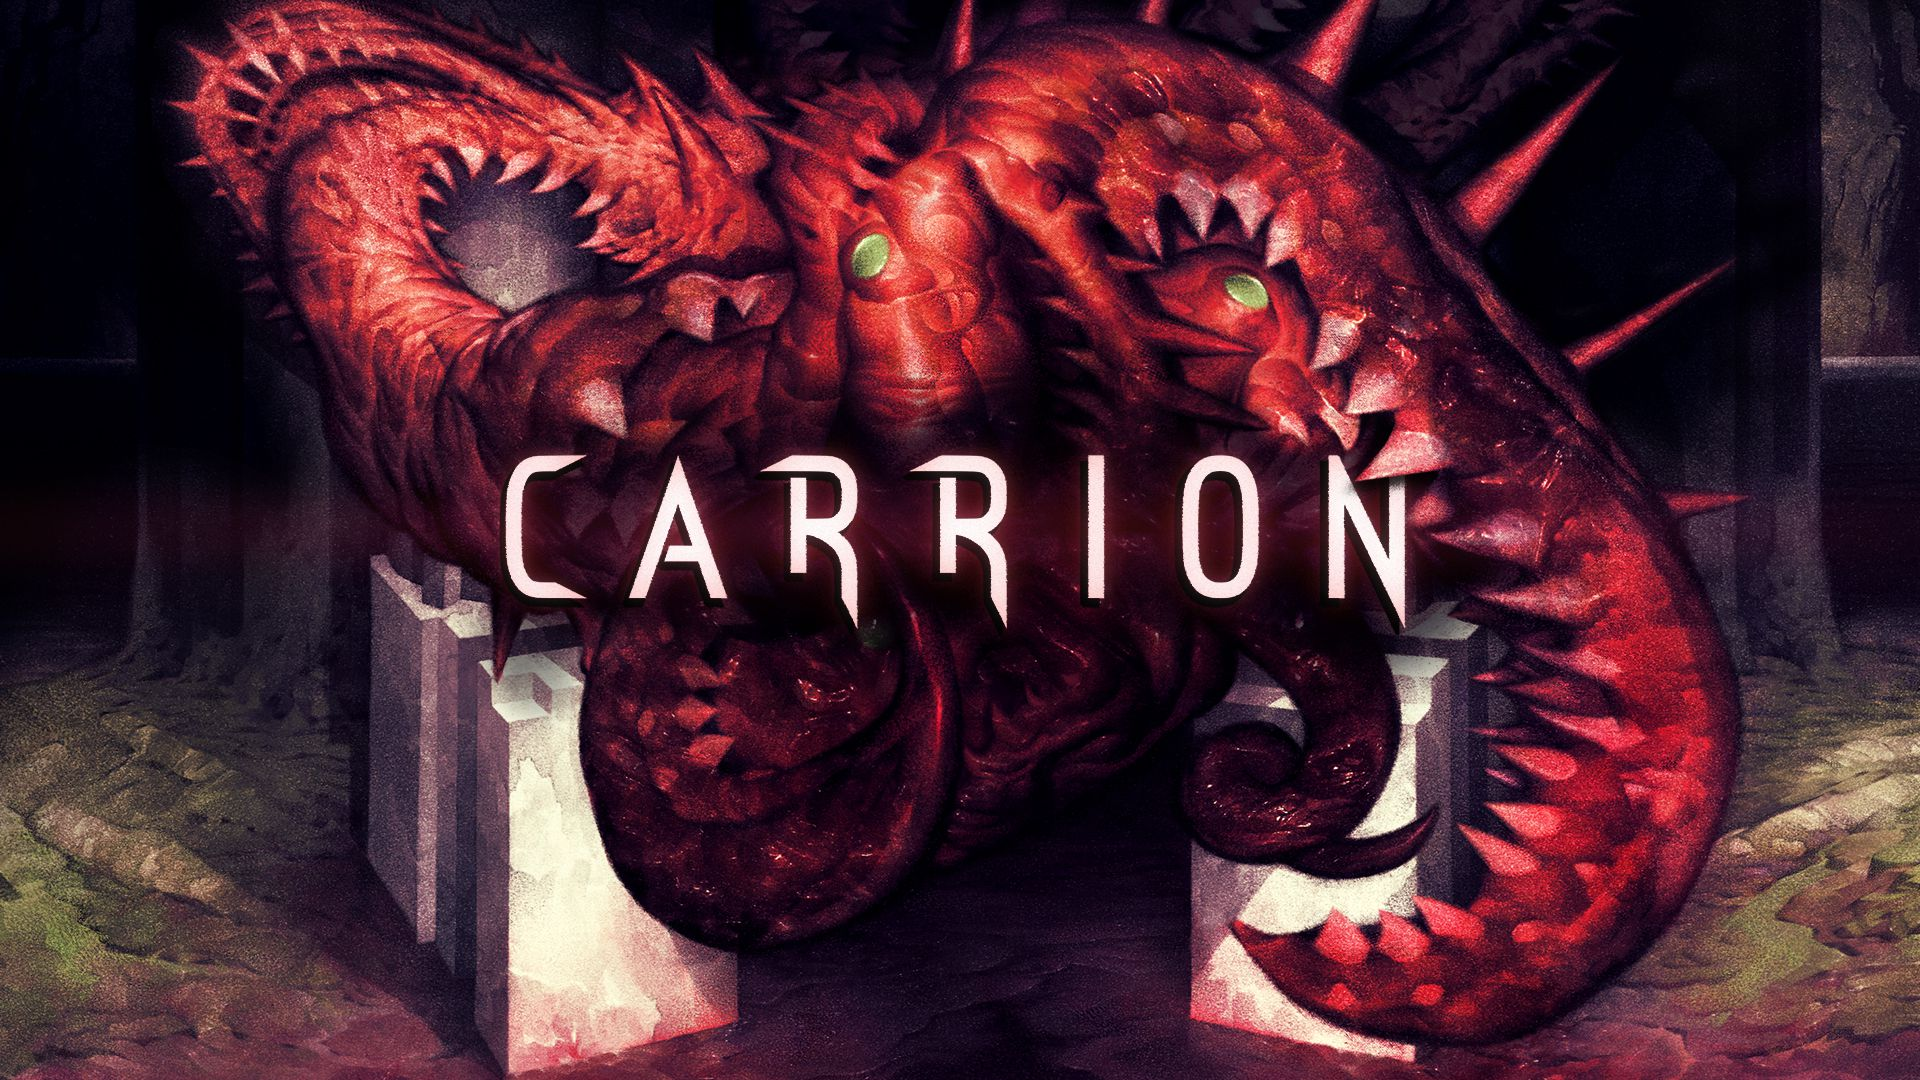 Carrion Principal